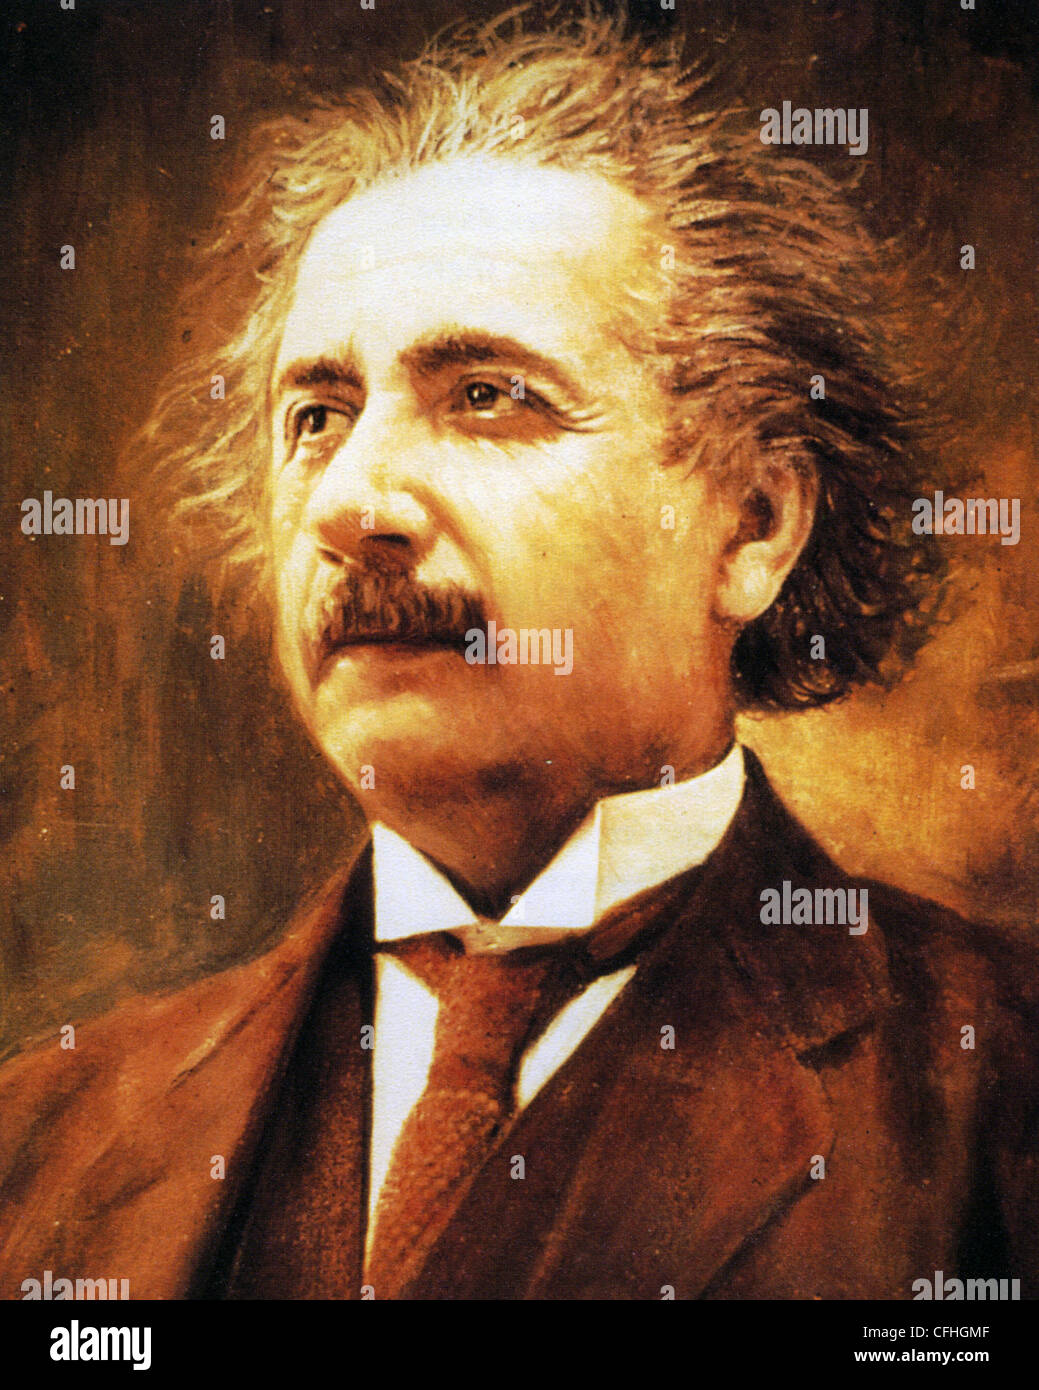 ALBERT EINSTEIN (1879-1955) German-born theoretical physicist - Stock Image